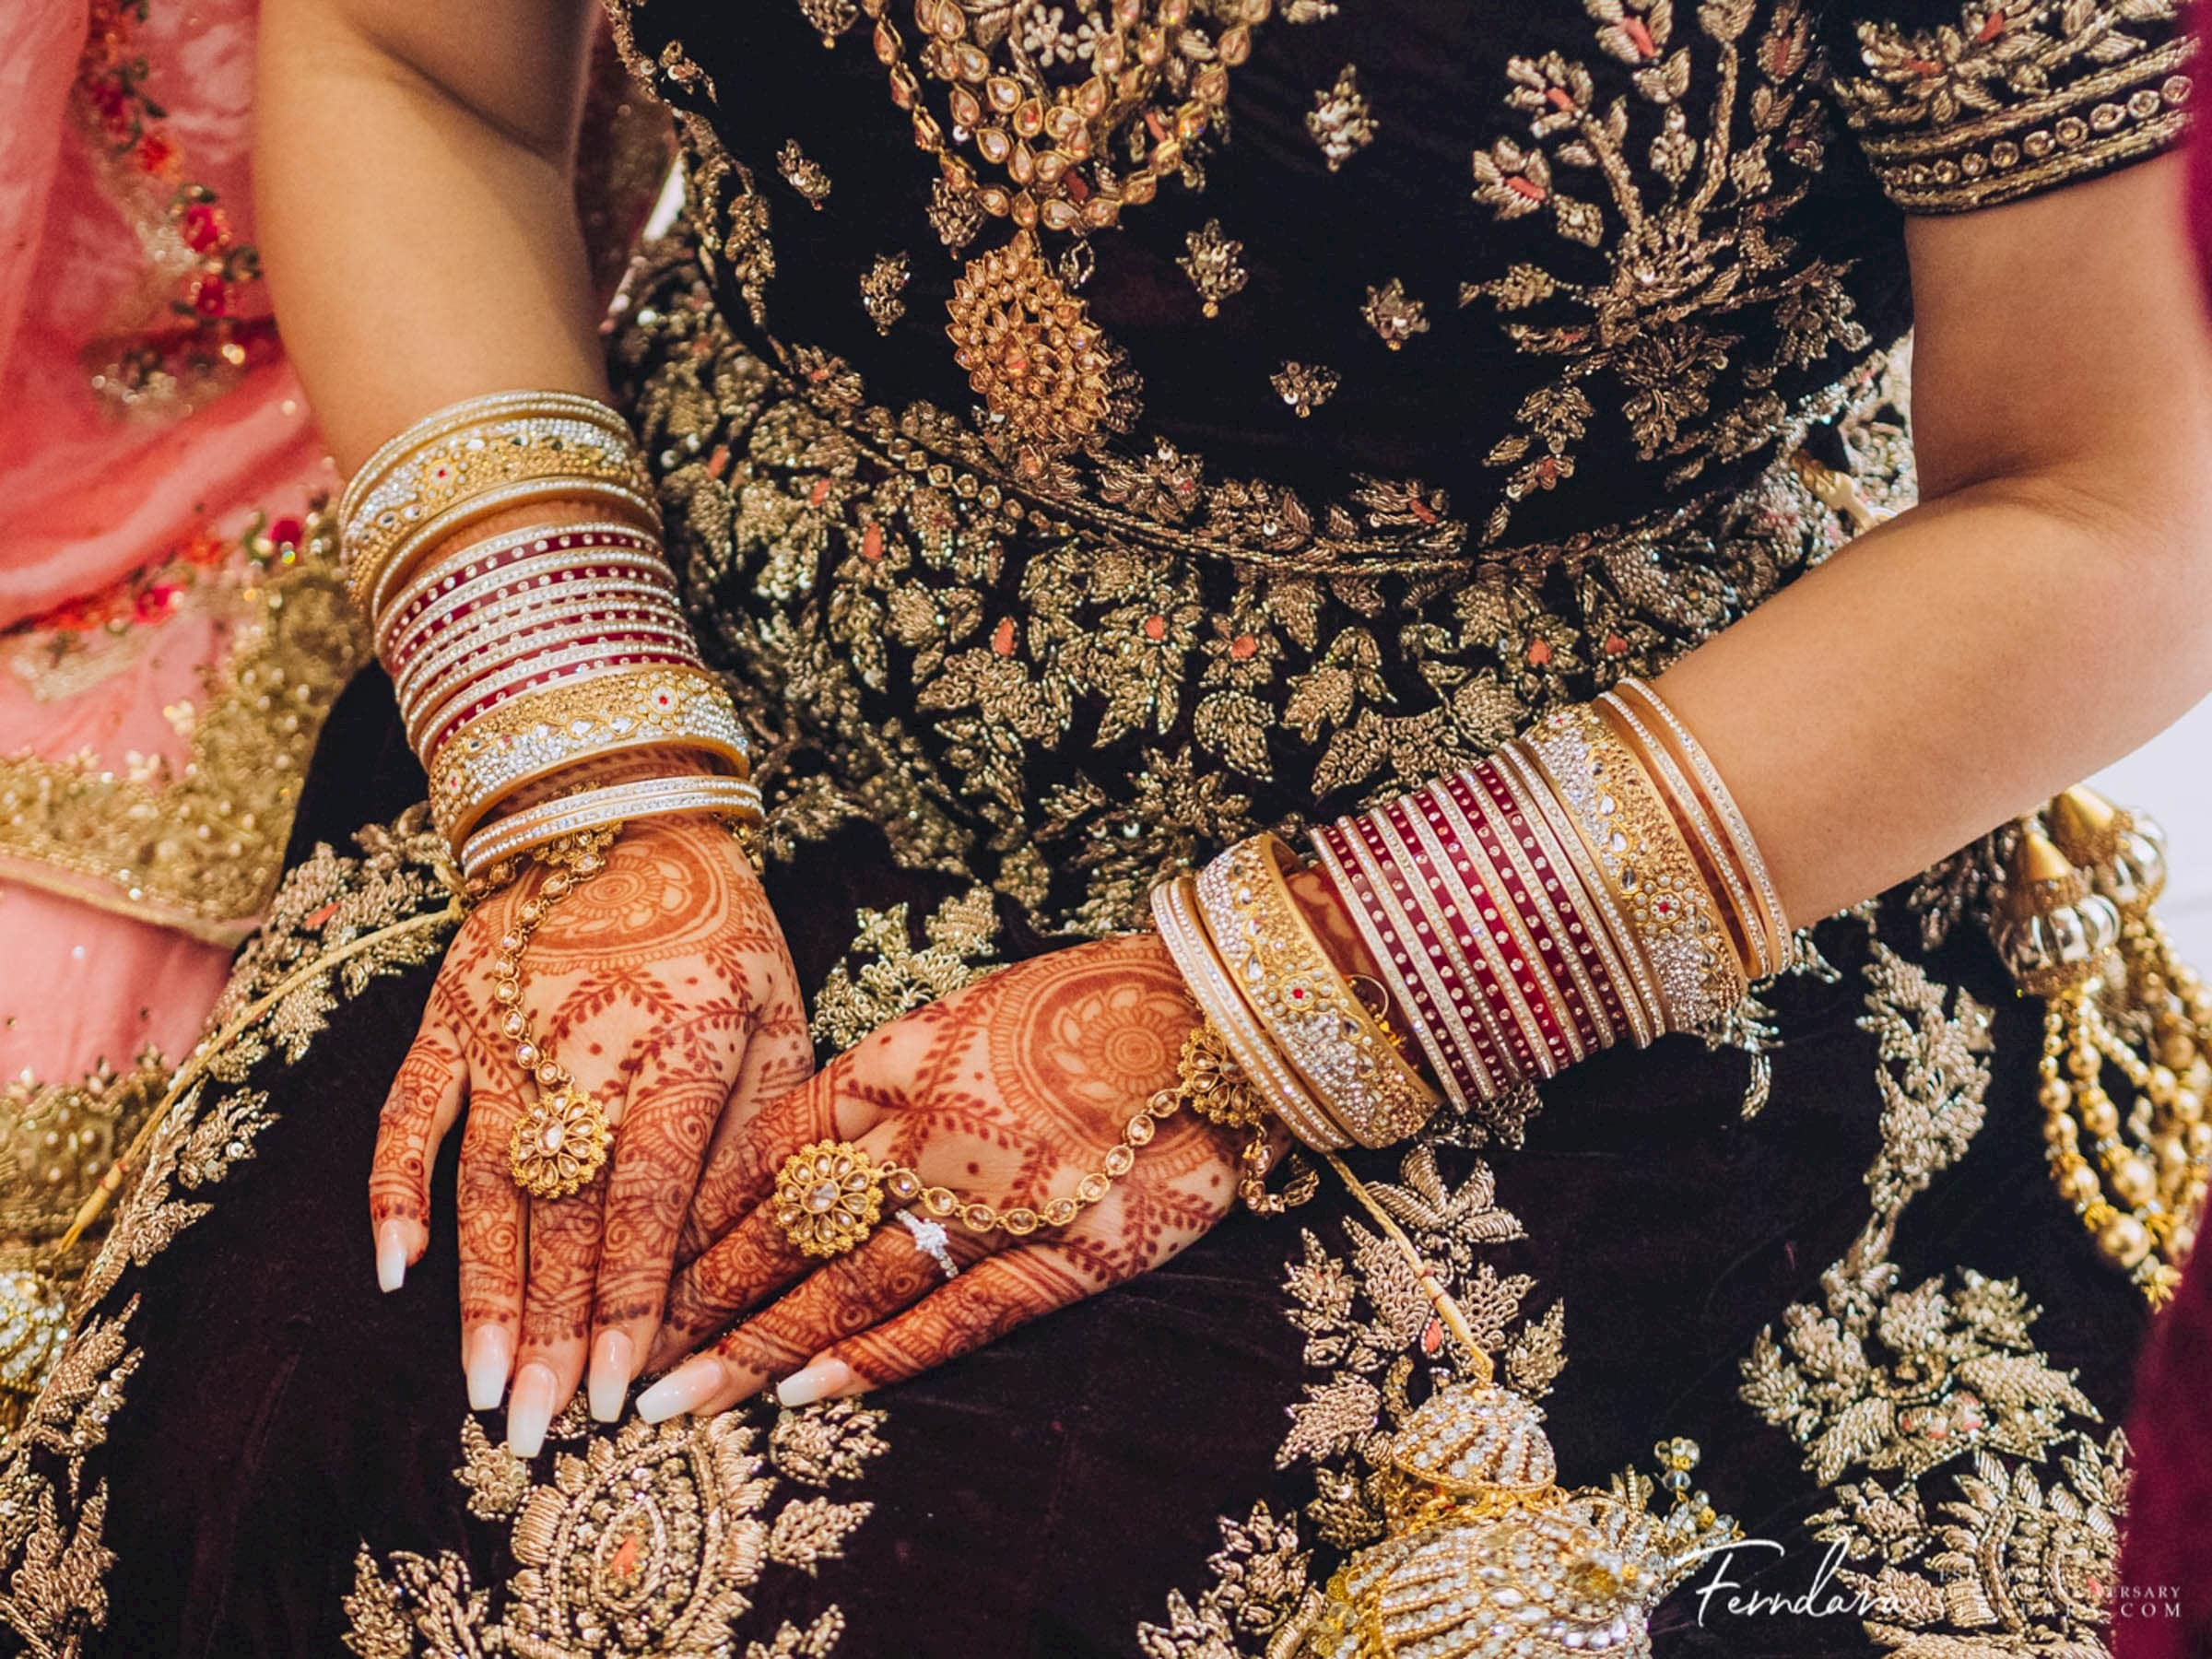 Introducing Melbourne Bridal Henna and Makeup Artist Faadhilah Buksh of Fadziies Mehndi And Beauty. Fadziie is an experienced mehndi artist who is open to travelling all across Australia for Indian weddings. Check out this henna stain!